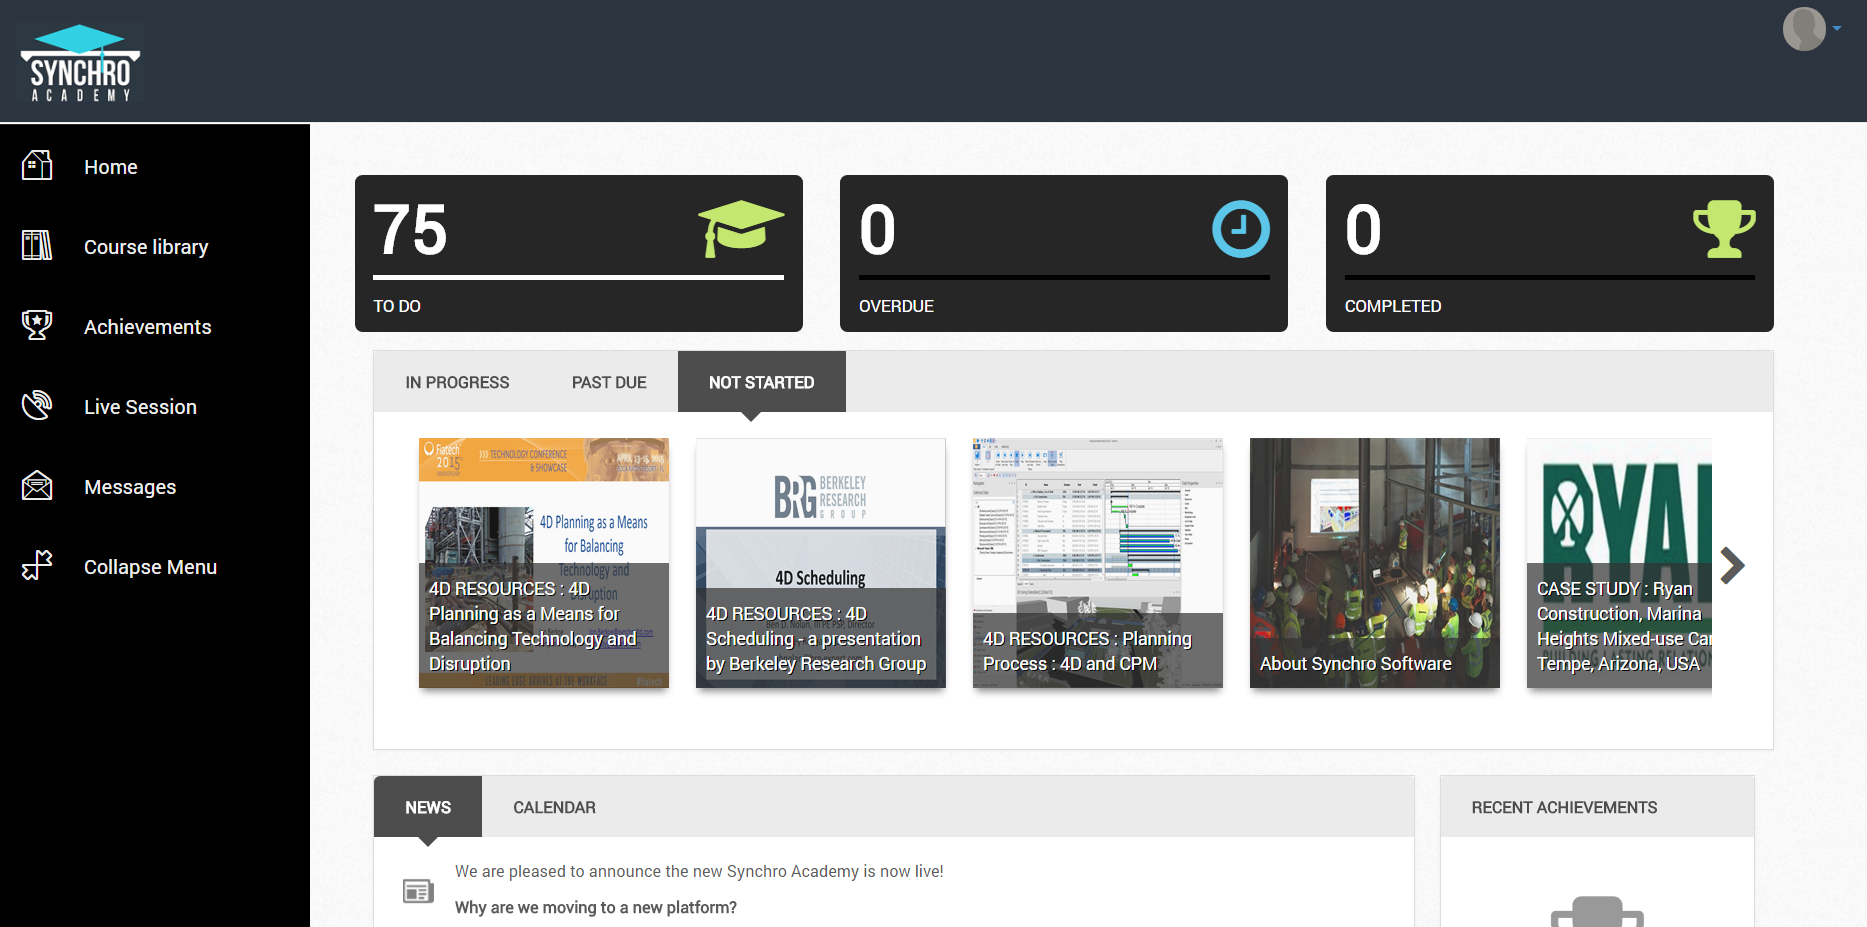 The new Synchro Academy dashboard is clear and easy to navigate